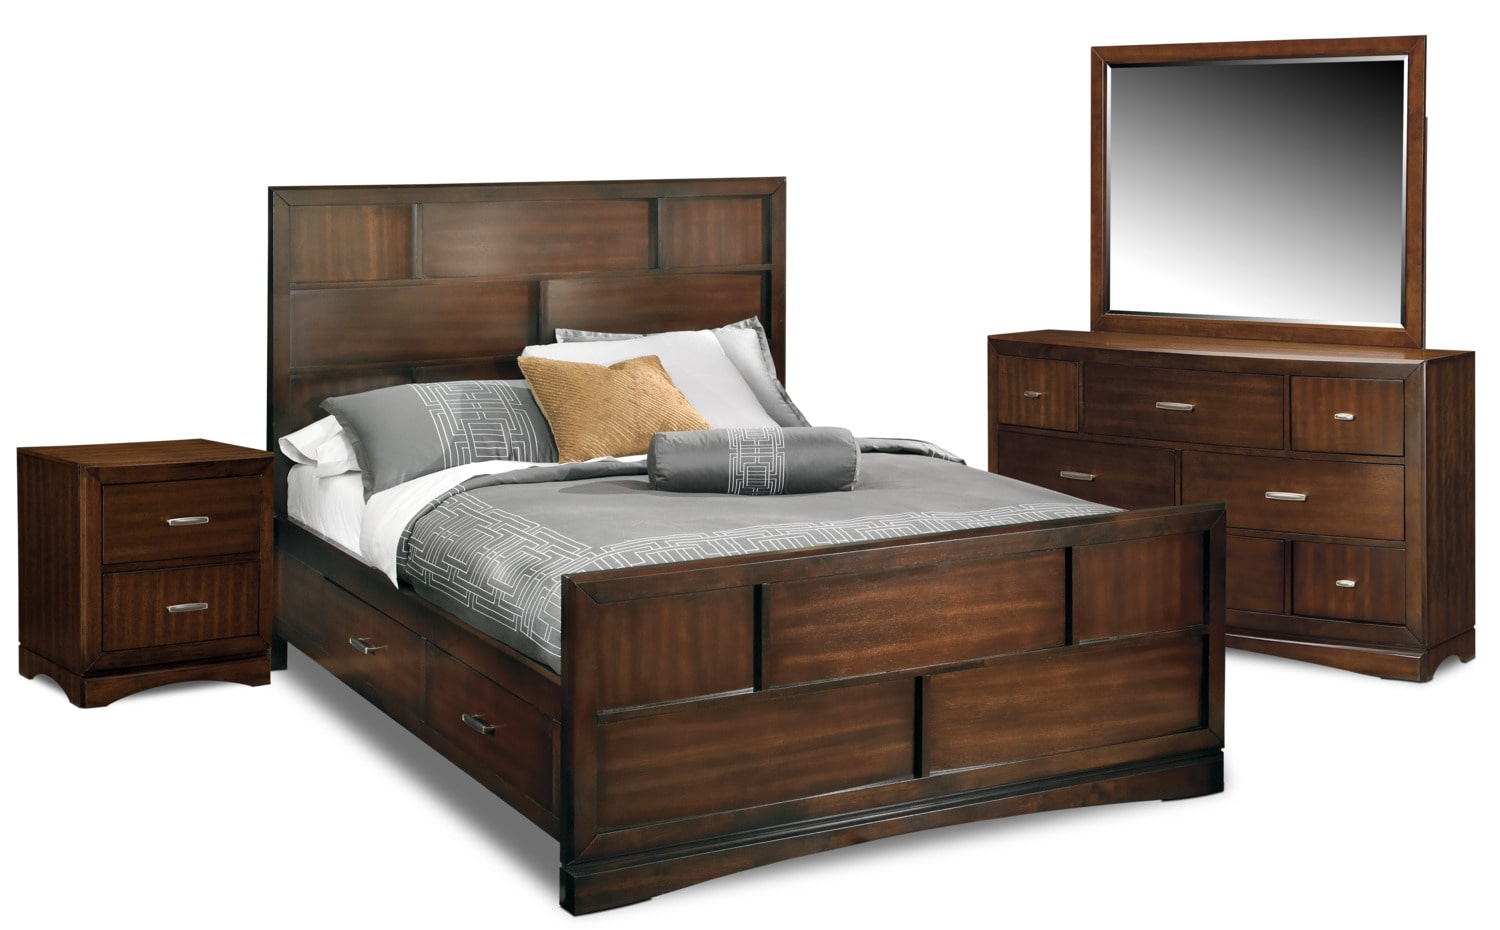 Bedroom Furniture - Toronto 6-Piece Storage Bedroom Set with Nightstand, Dresser and Mirror